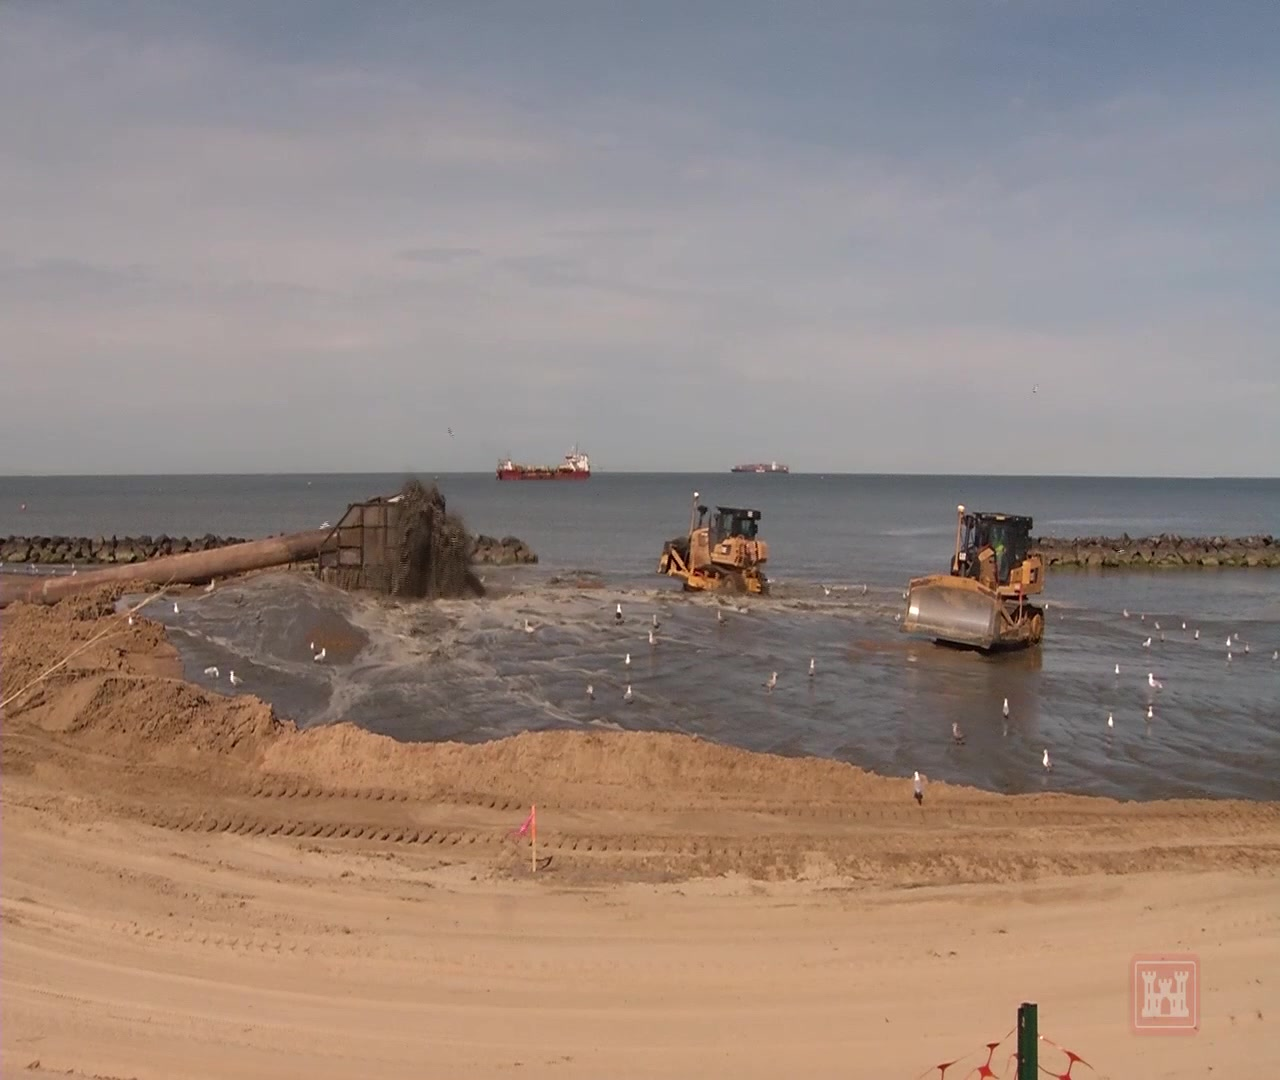 For 12 weeks, contractors worked around-the-clock, using dredges to suck up sand from the bottom of the Chesapeake Bay in the Norfolk, Virginia neighborhoods of Willoughby Spit, East Ocean View and Ocean View. The effort was done to raise and widen the beach to protect infrastructure in this portion of the city.